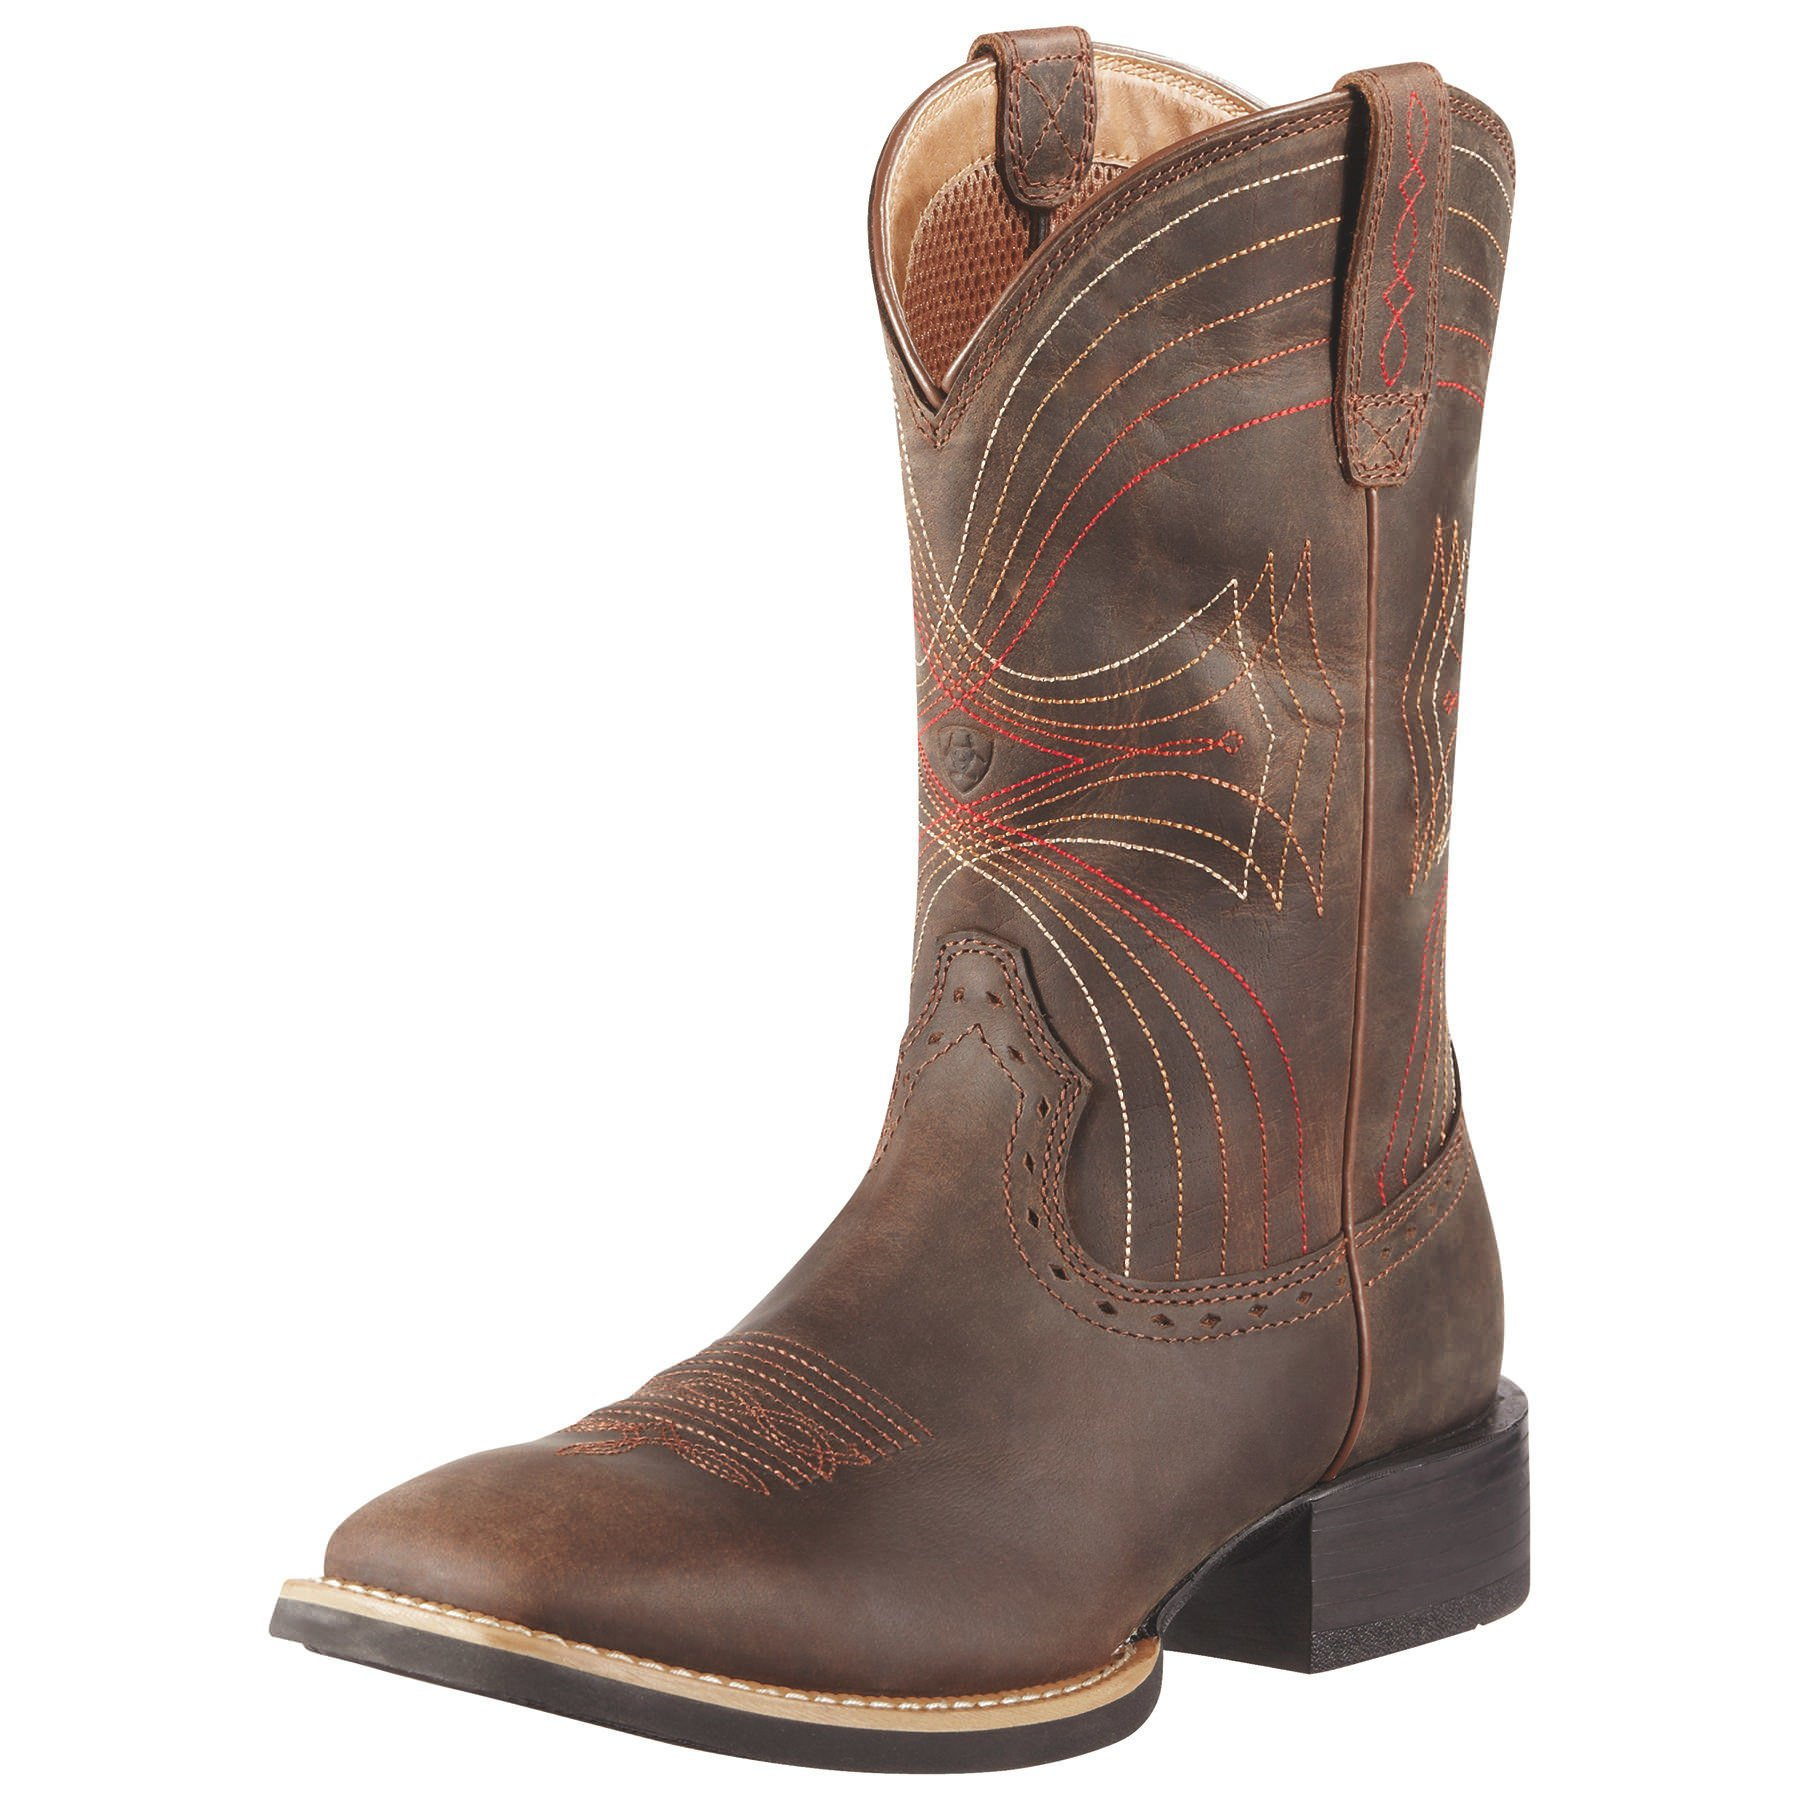 Ariat Men's Sport Wide Square-Toe Western Cowboy Boot, Distressed Brown, 10.5 2E US